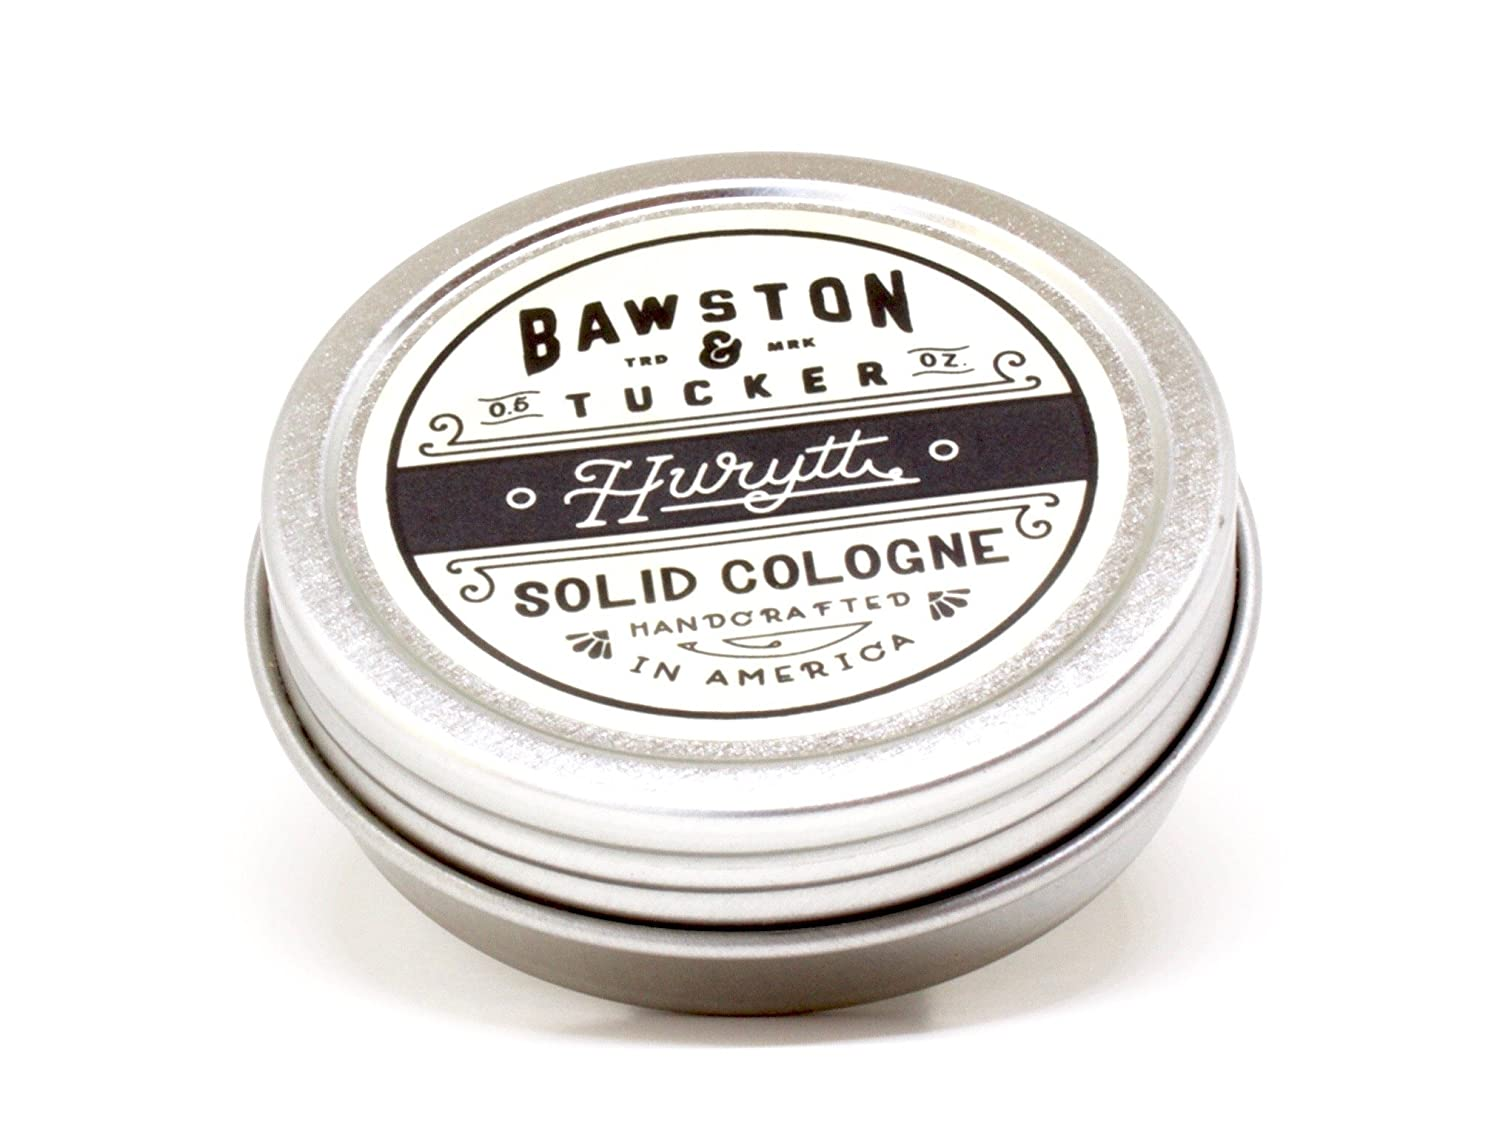 Hurytt Solid Cologne 0.5 oz